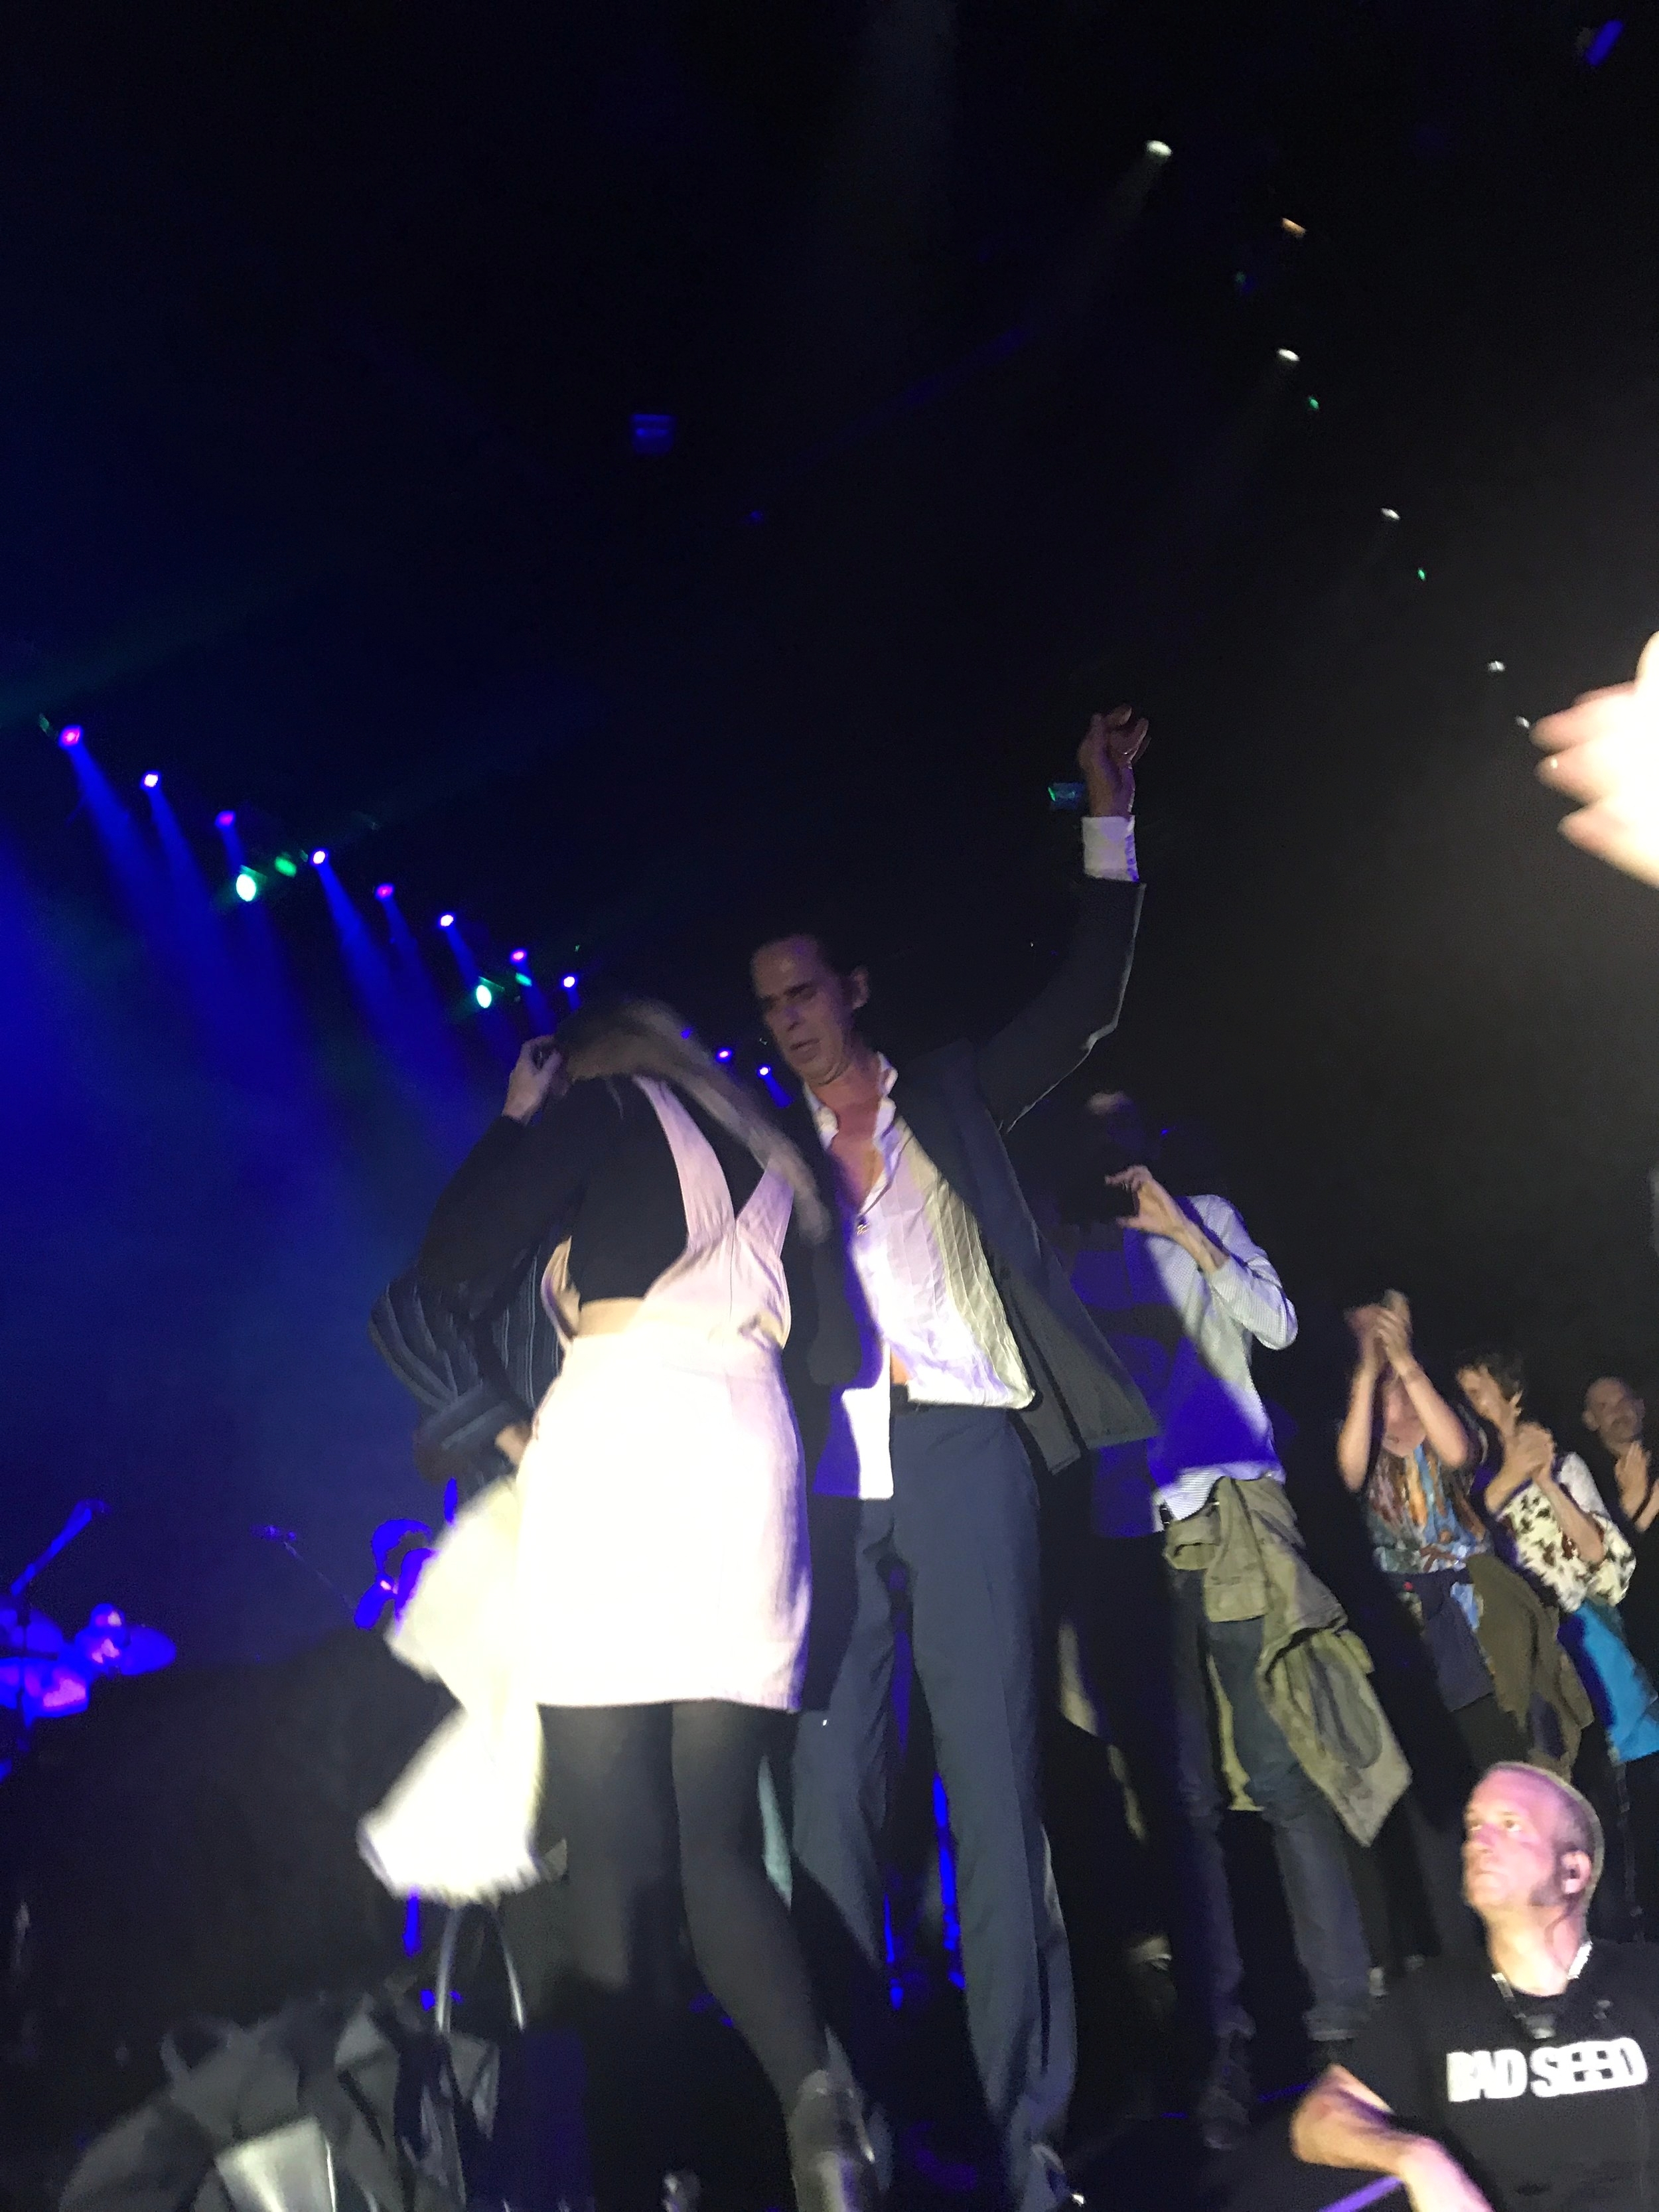 Burntaxe at Nick Cave and The Bad Seeds Skeleton Tree gig in Bournemouth BIC on 24th September 2017, woman dancing with Nick Cave during stage invasion, picture courtesy Michelle Mealor, Burntaxe